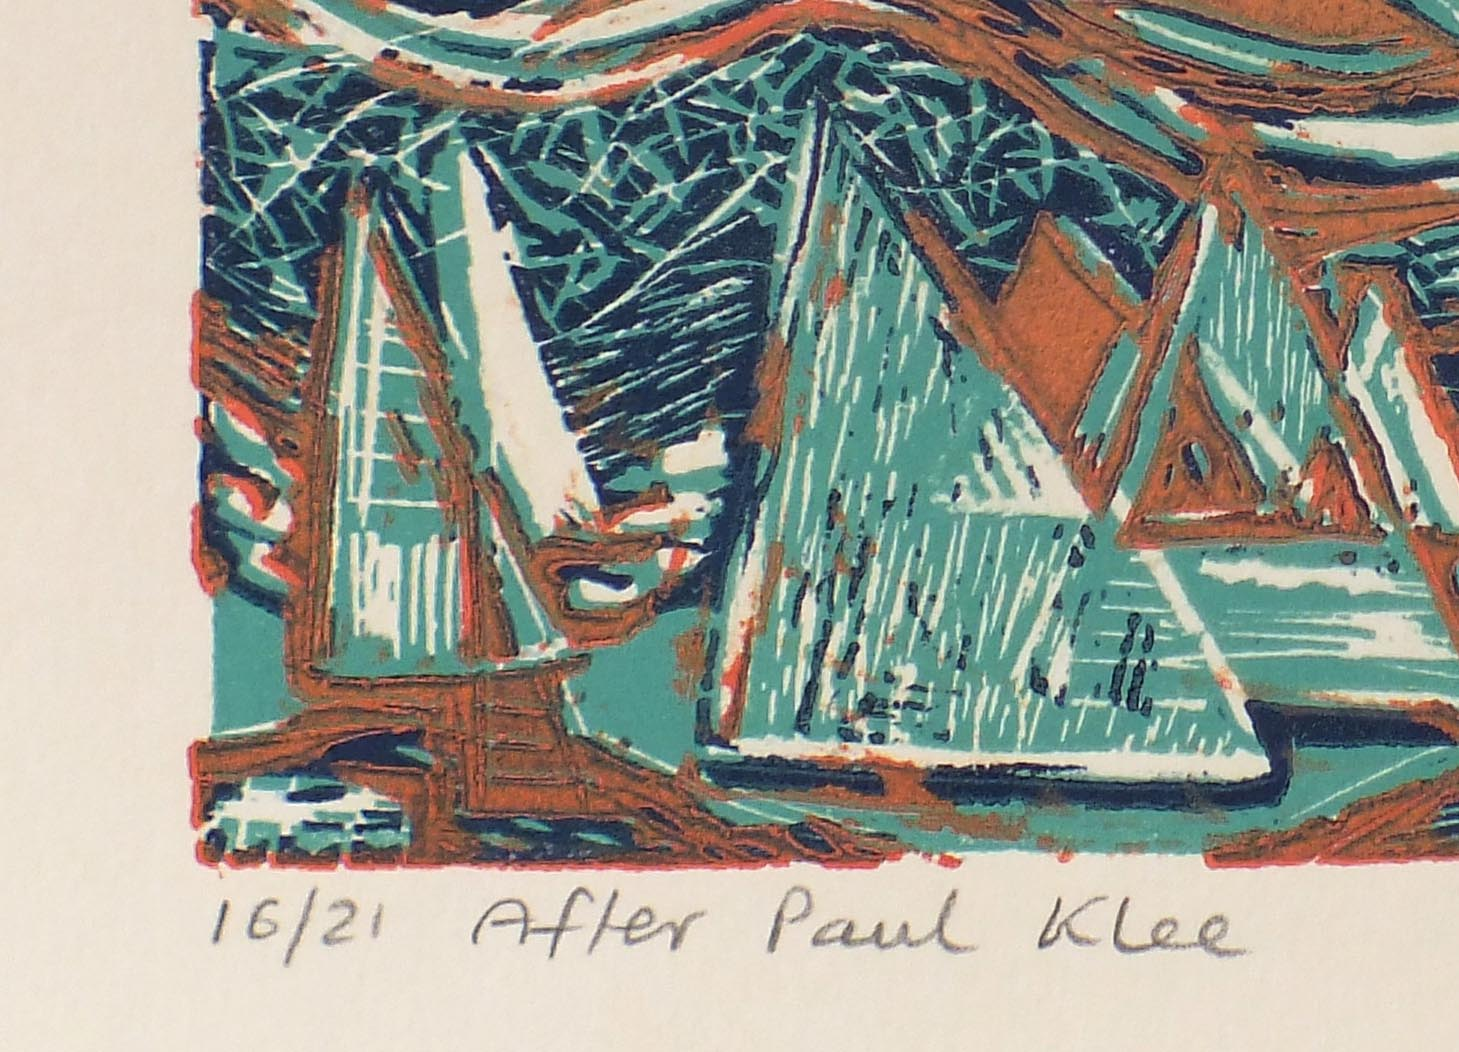 After Paul Klee #16 edition.jpg